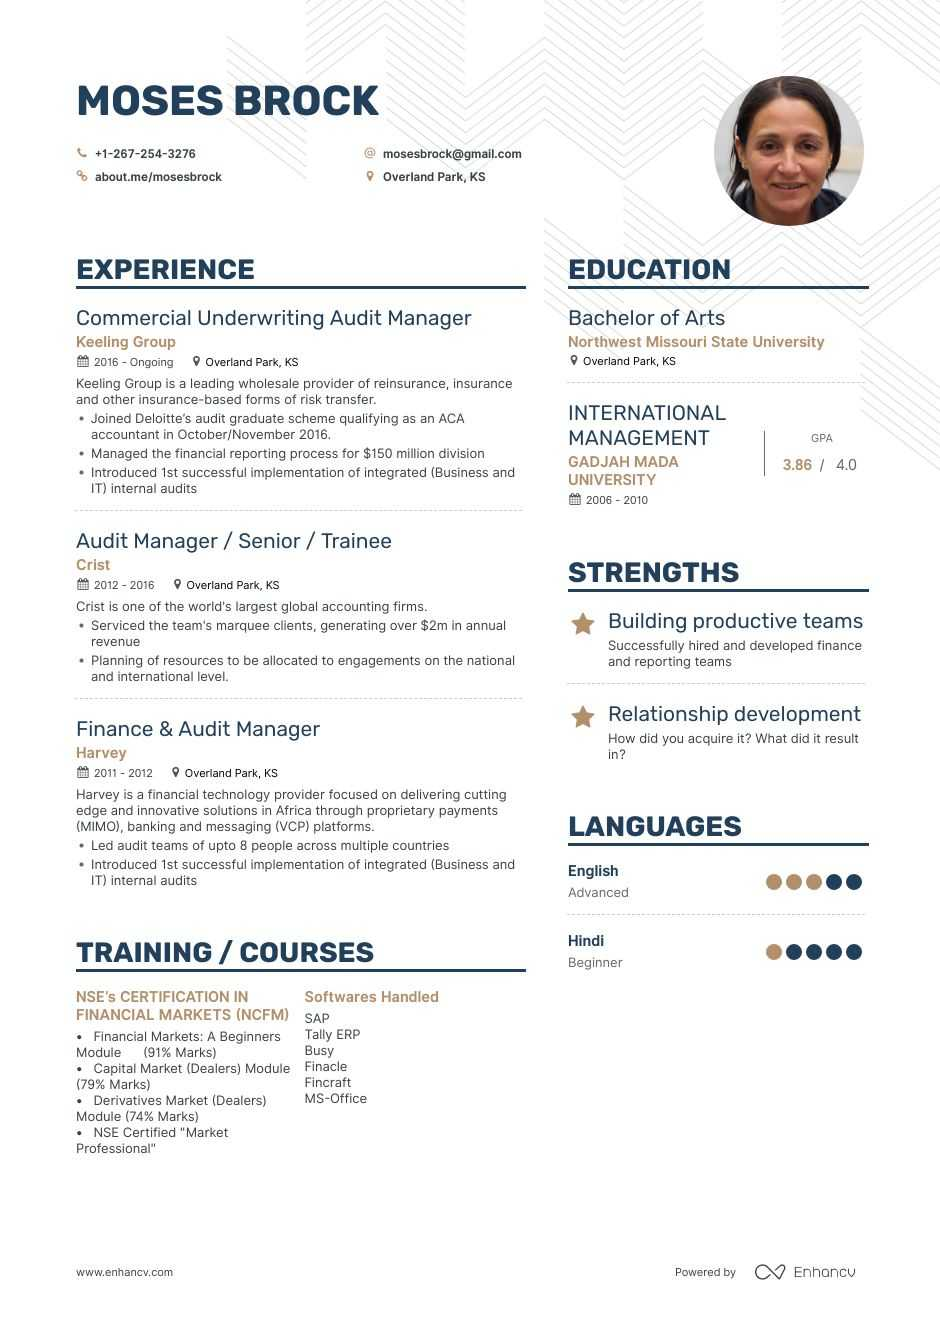 top audit manager resume examples samples for enhancv internal promotion malaysian sample Resume Resume For Internal Promotion